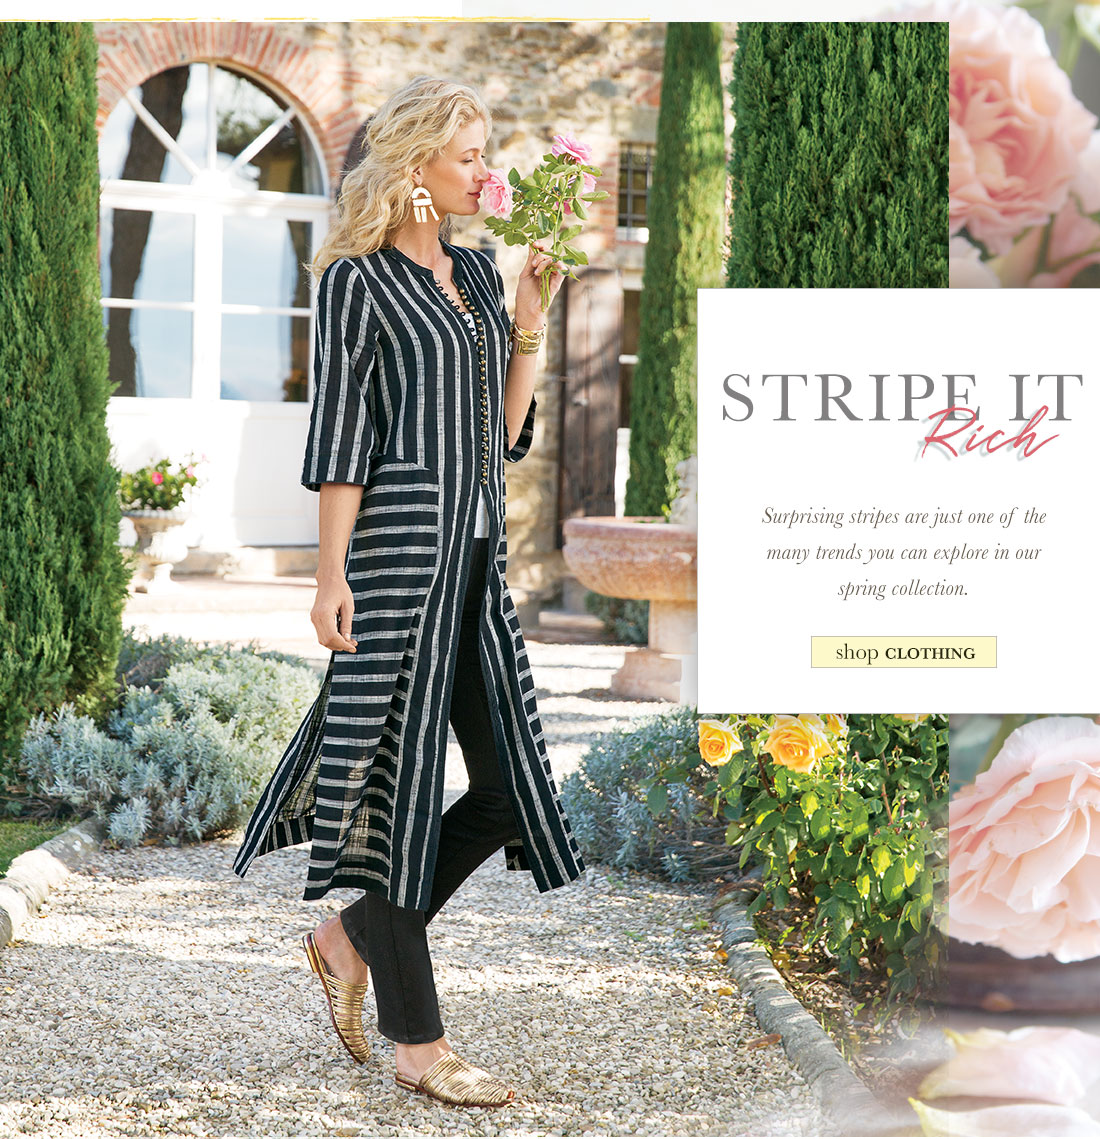 Stripe it Rich- shop clothing